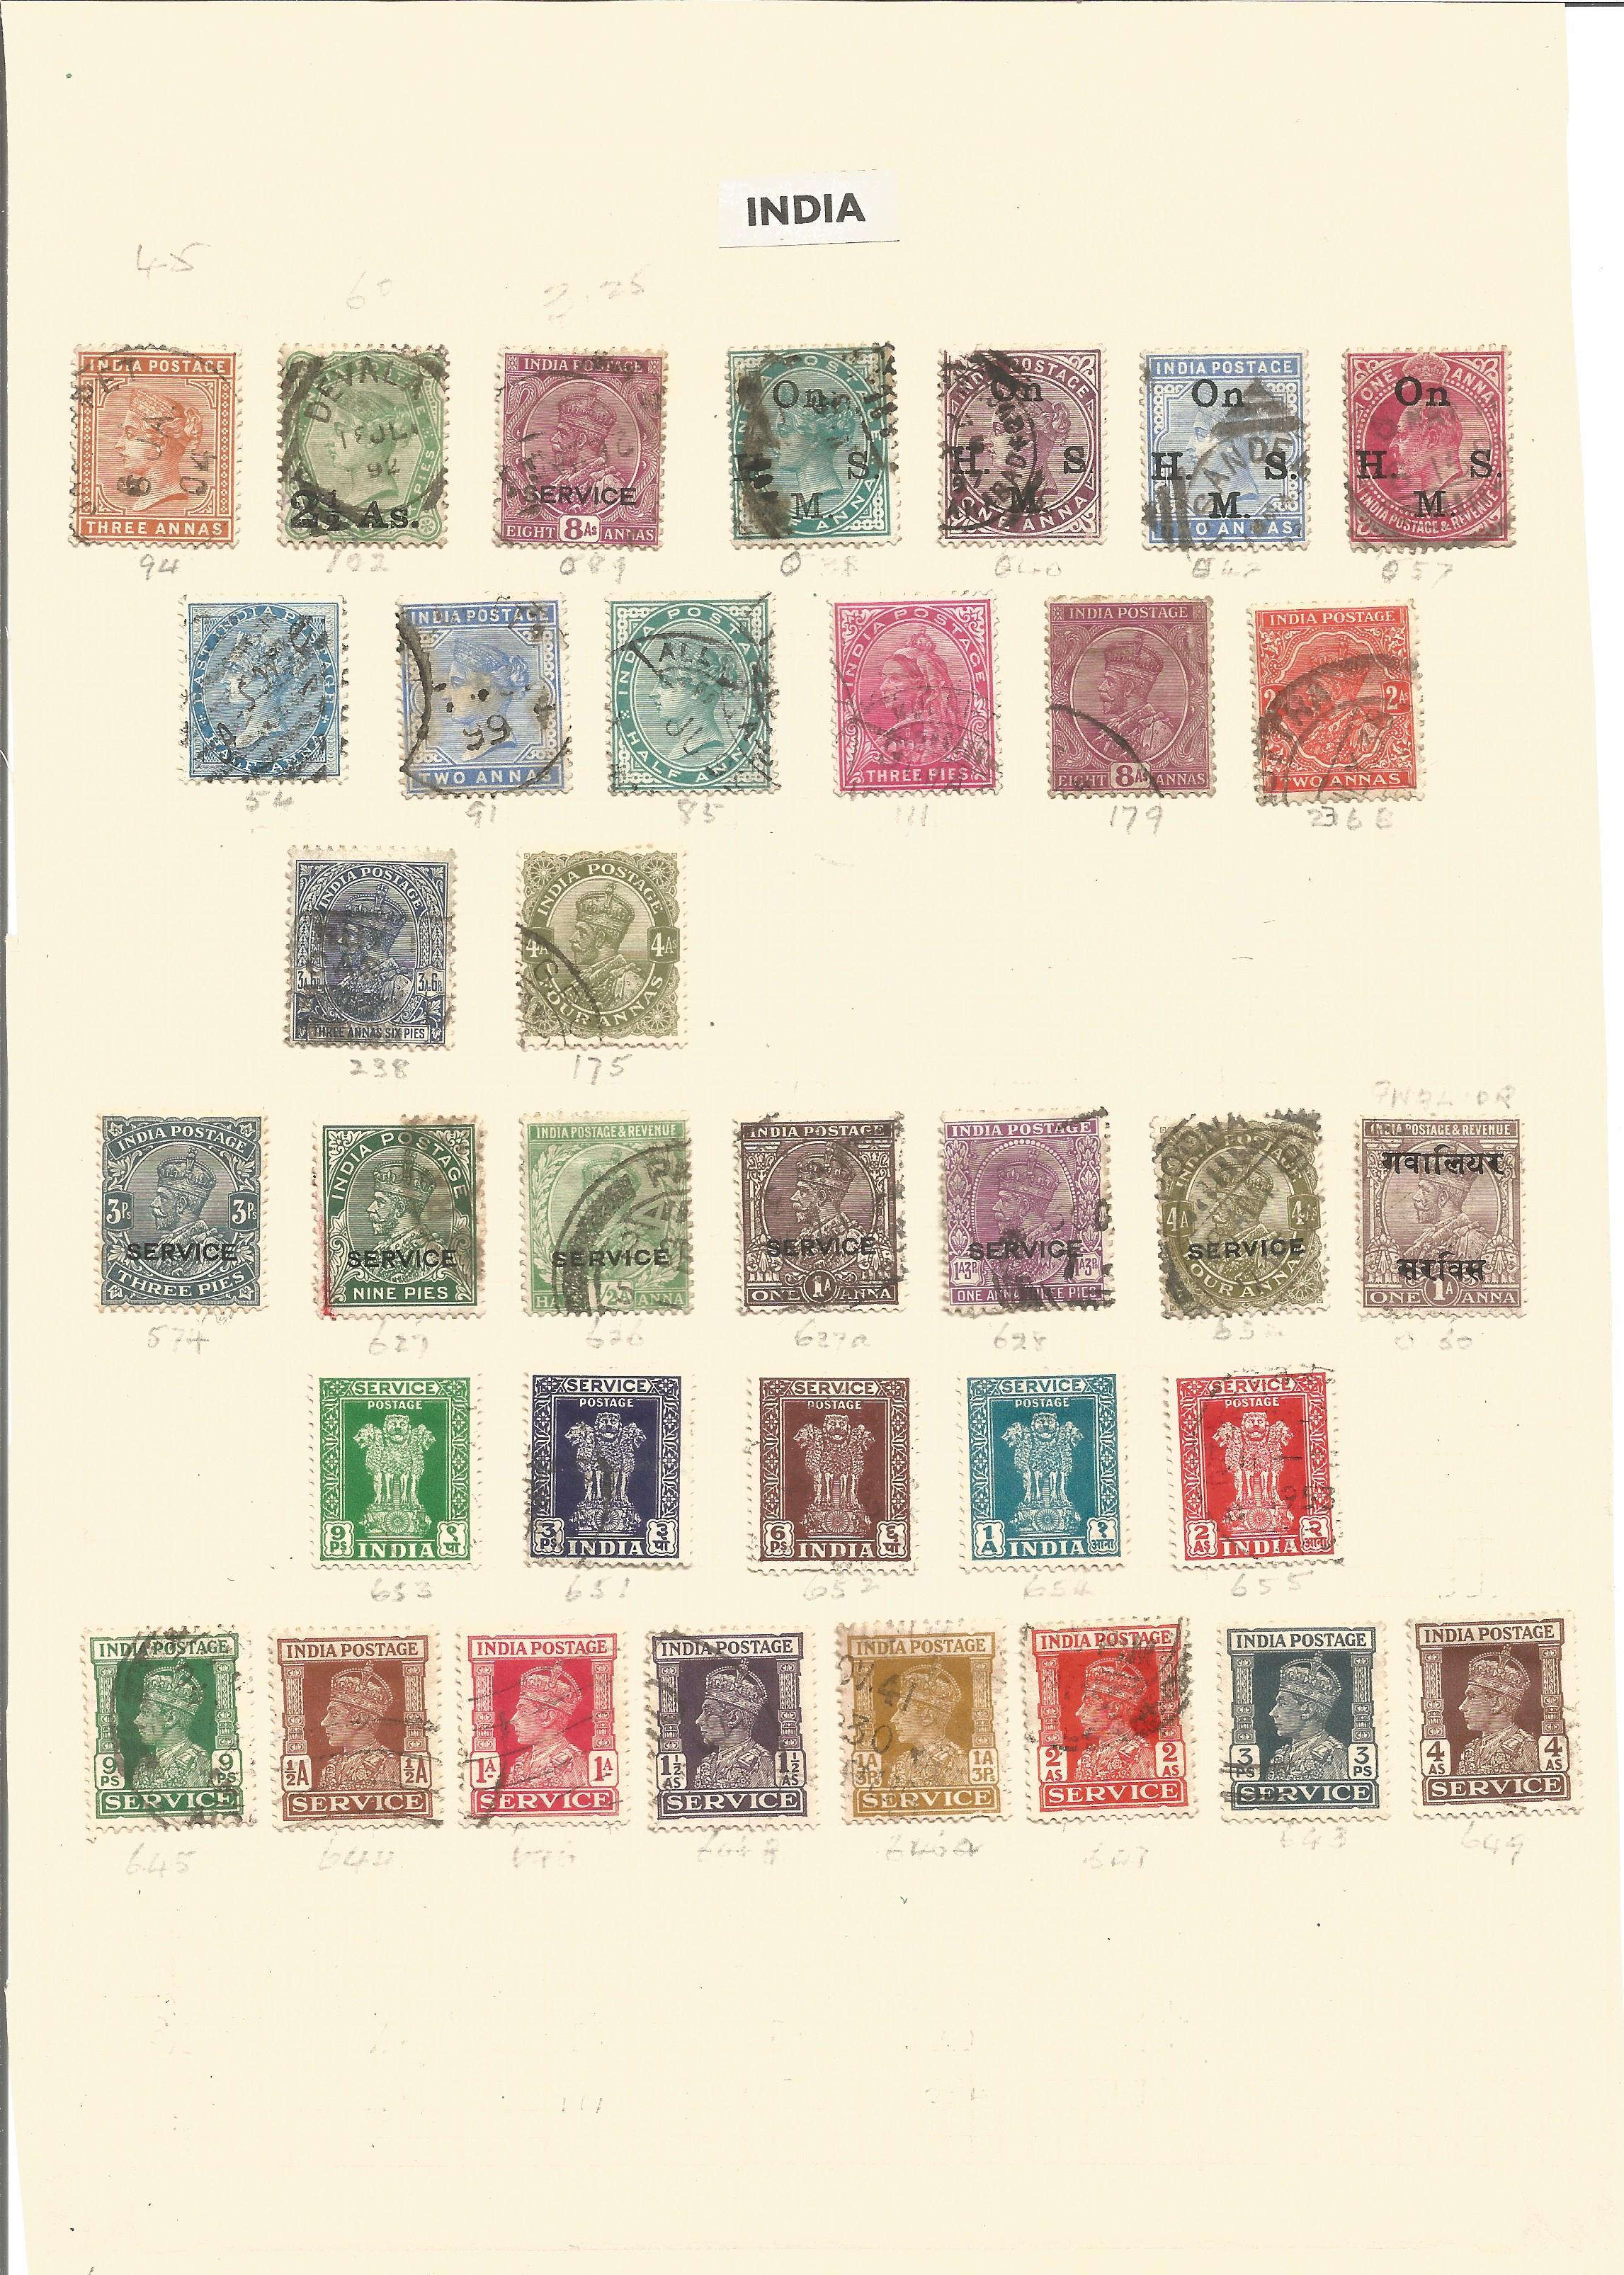 India stamp collection on 4 loose pages. Good condition. We combine postage on multiple winning lots